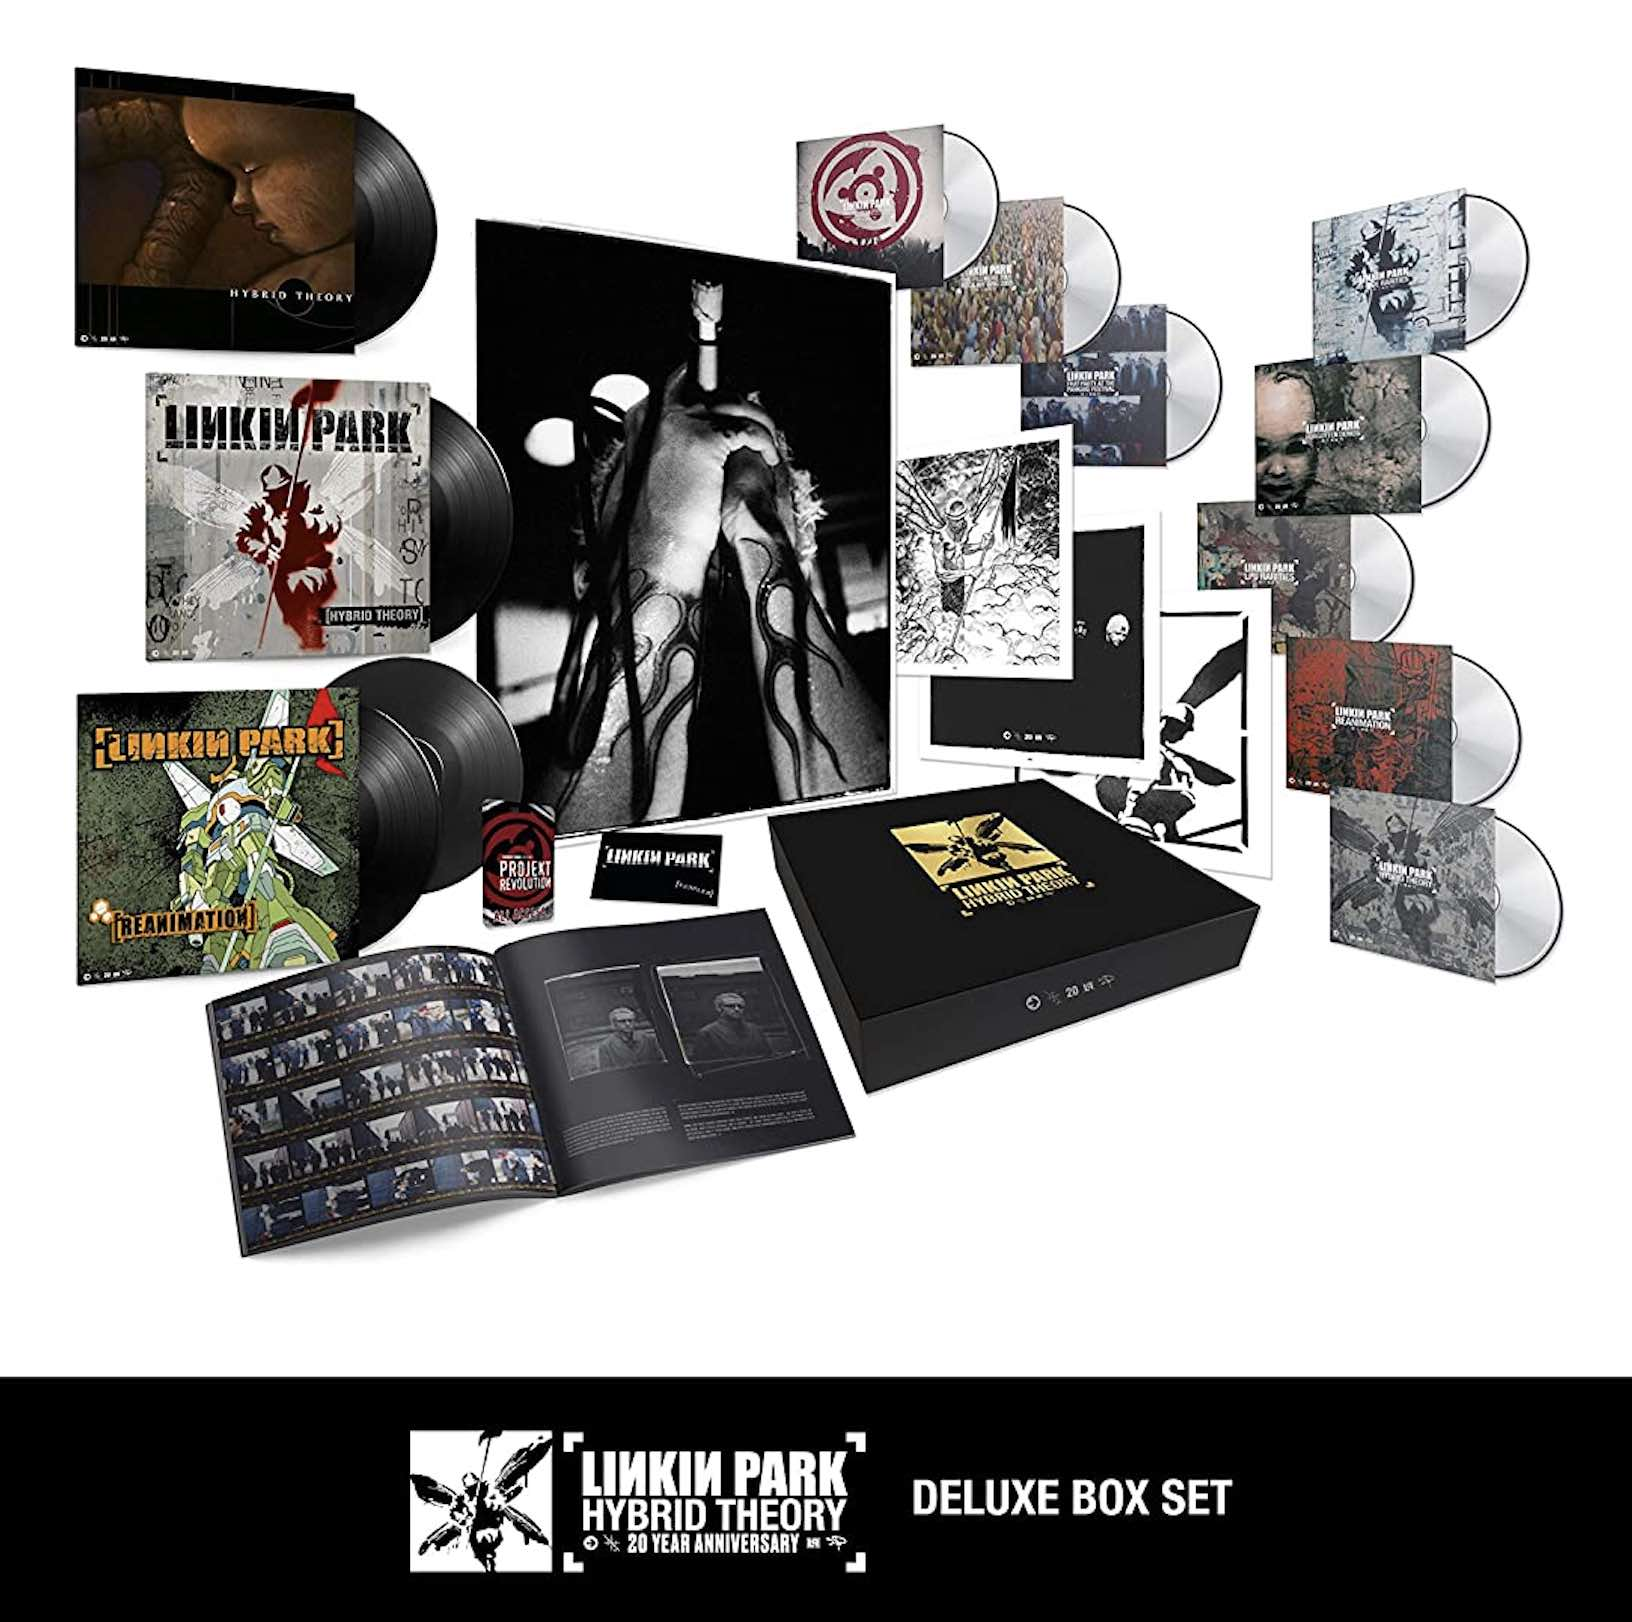 Linkin Park - Hybrid Theory 20th Anniversary Super Deluxe Box Set  LP + CD + DVD